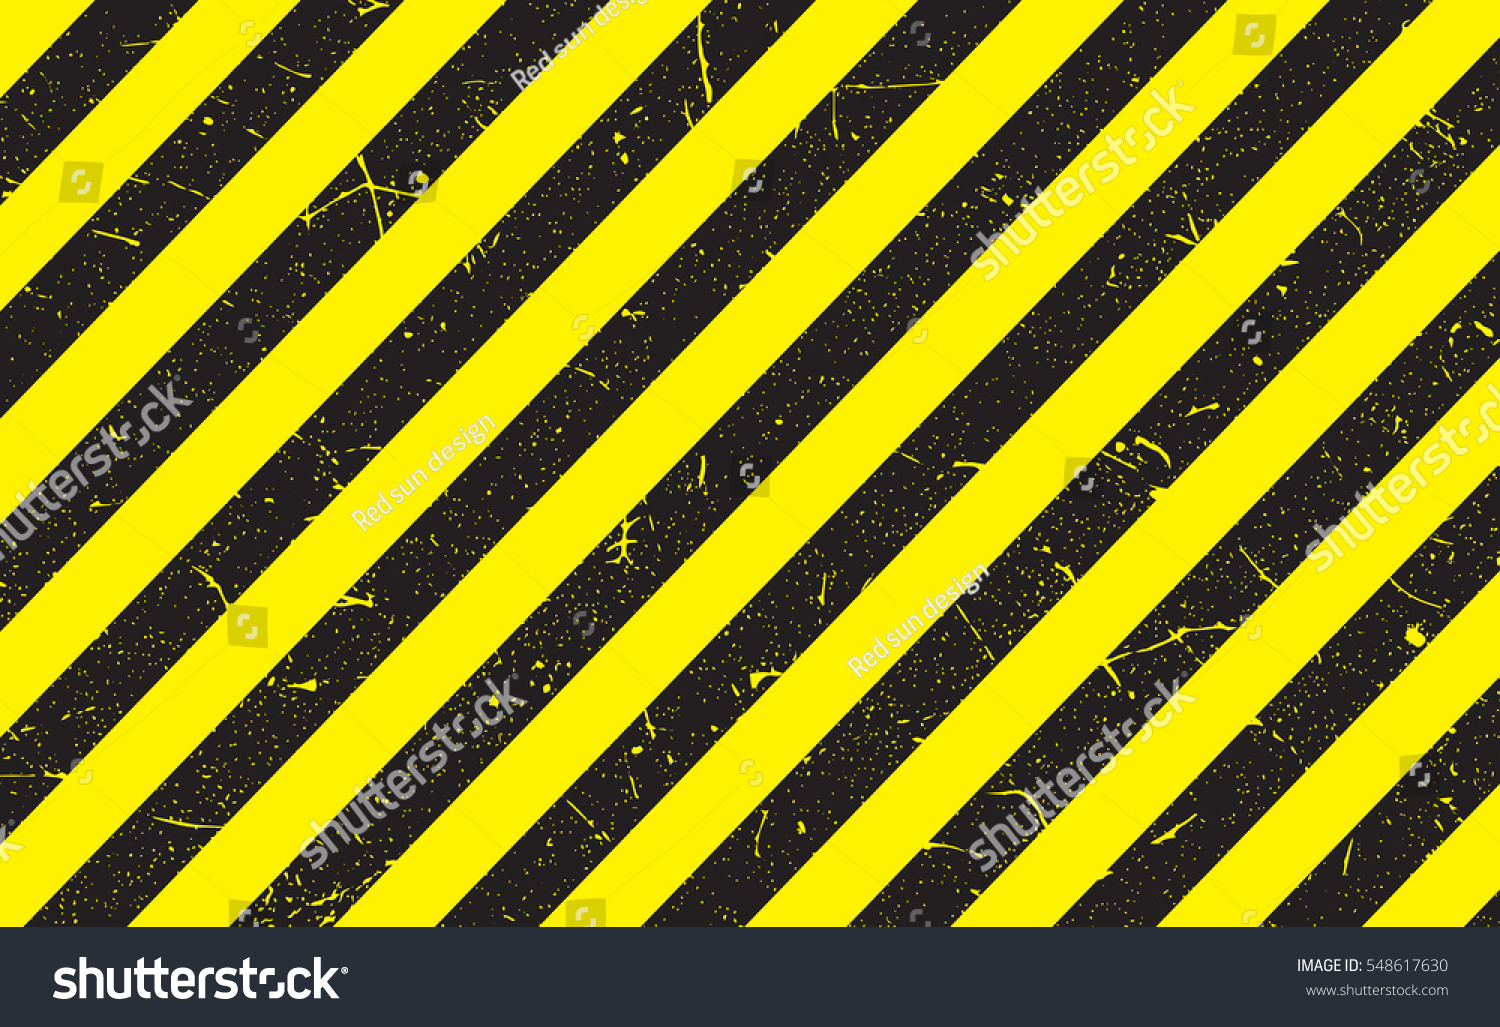 1500x1027 - Yellow and Black 15